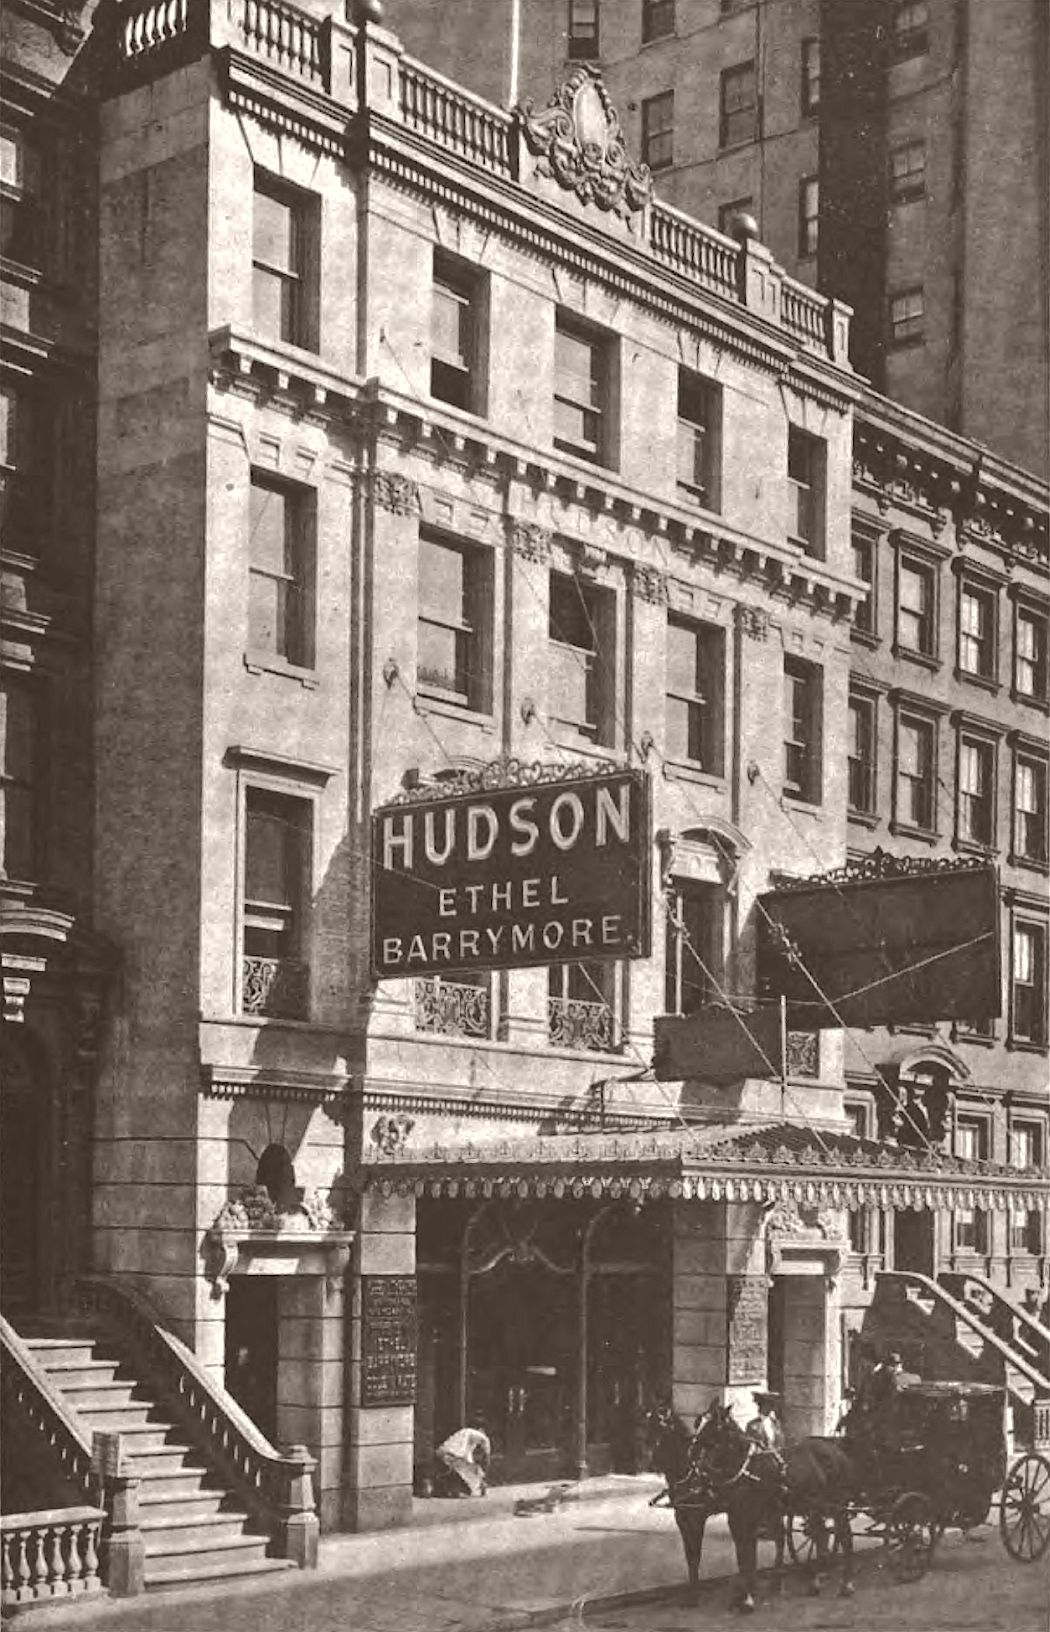 Hudson Theatre, West 44th Street, New York, 1904